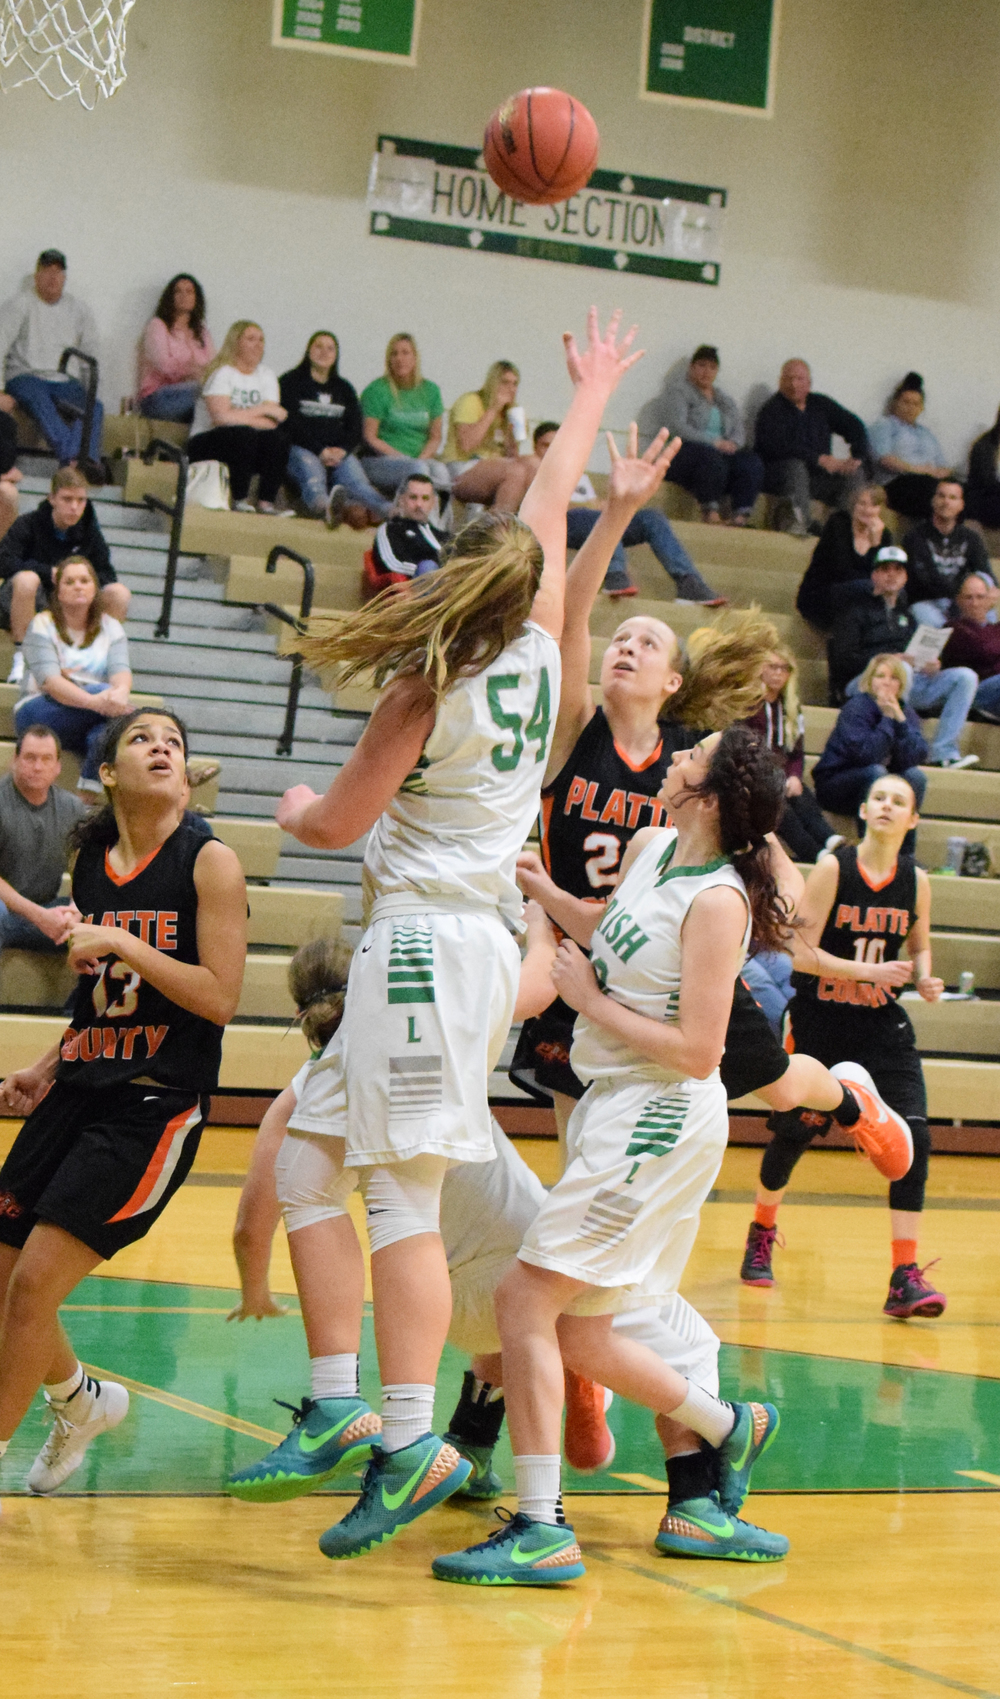 BRYCE MERENESS/Citizen photo Platte County freshman Jaycie Stubbs, right center, takes a shot against Lafayette in the first round of the Class 4 District 16 tournament on Saturday, Feb. 27 at Smithville High School in Smithville, Mo.